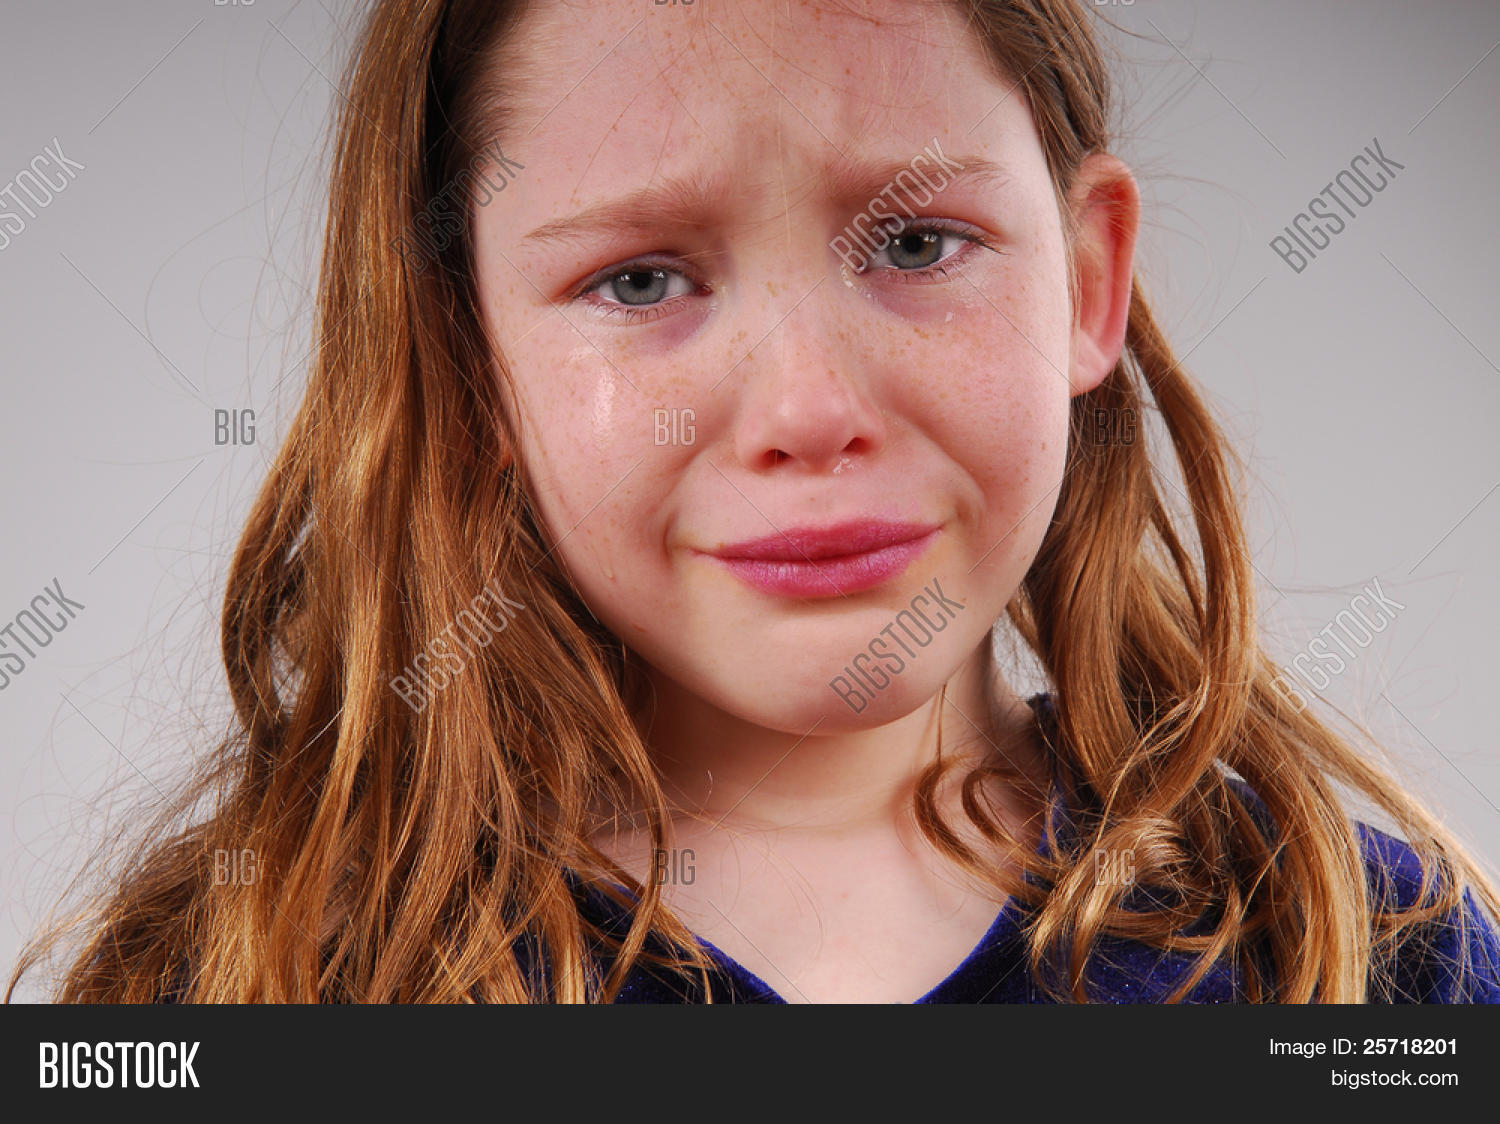 Young Girl Crying Image  Photo Free Trial  Bigstock-4769